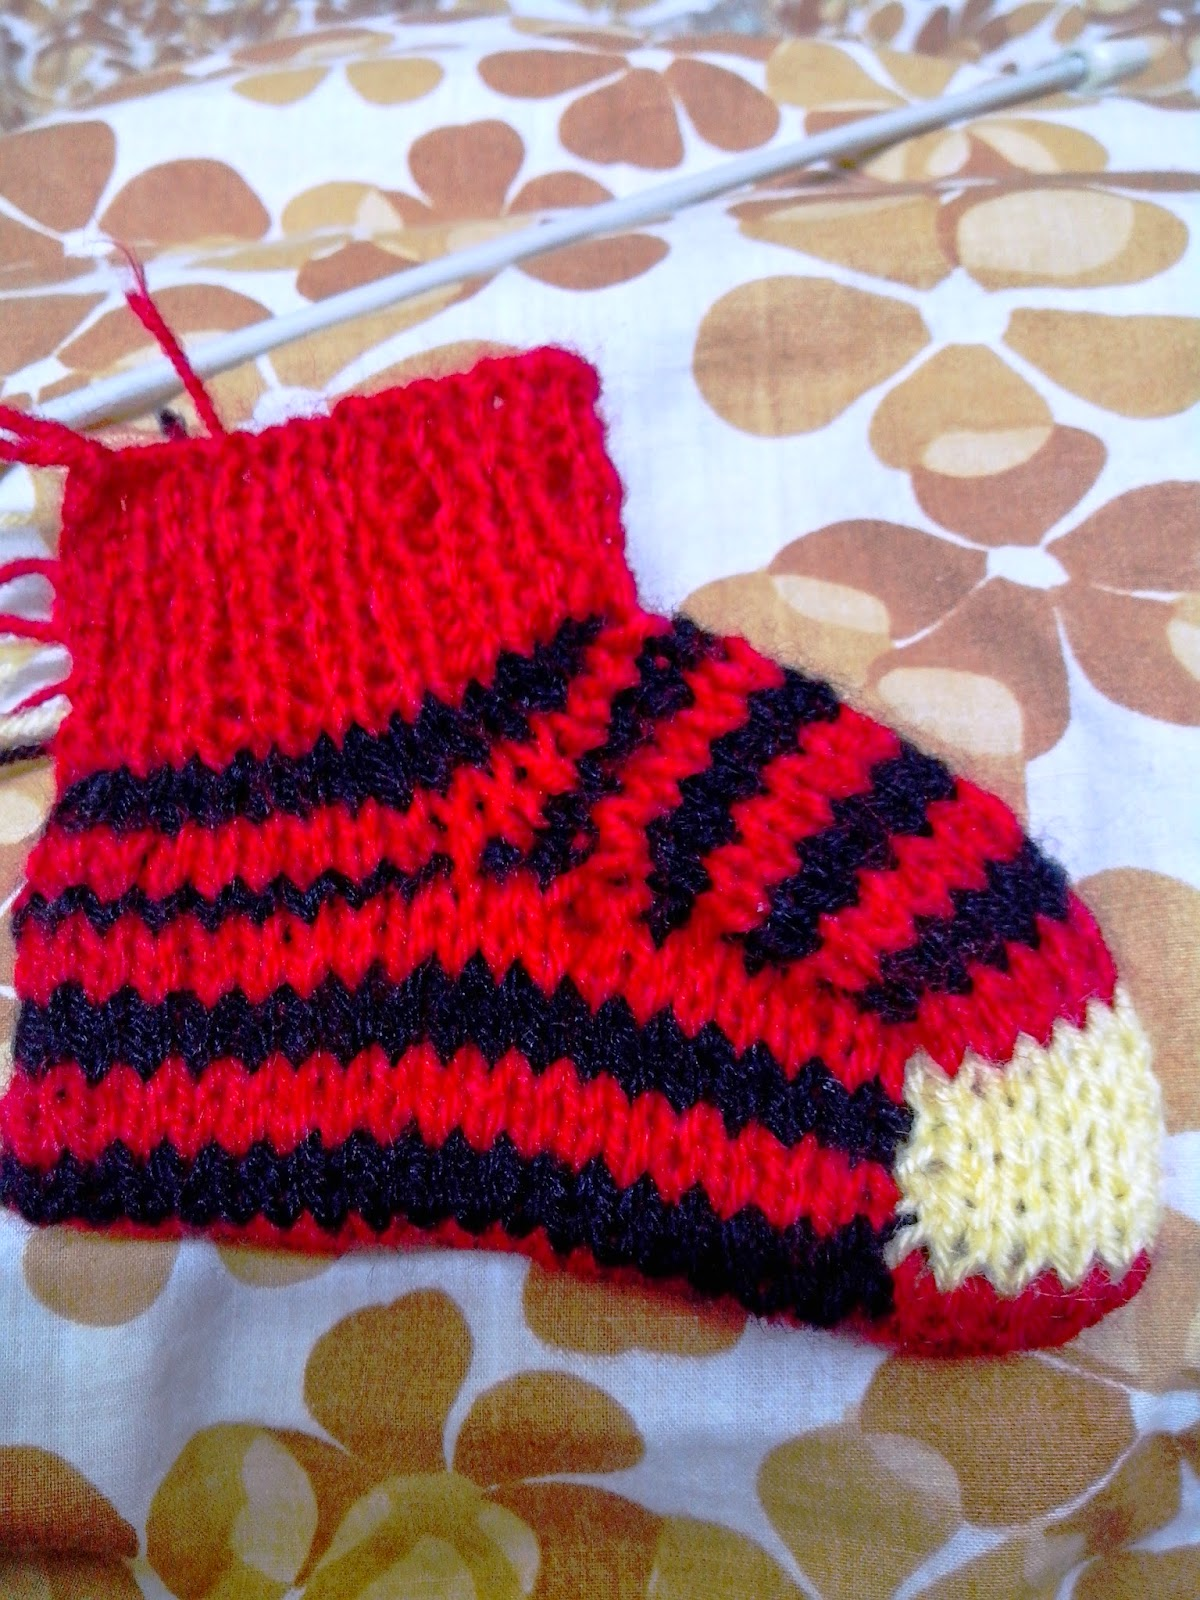 red and black striped bootie